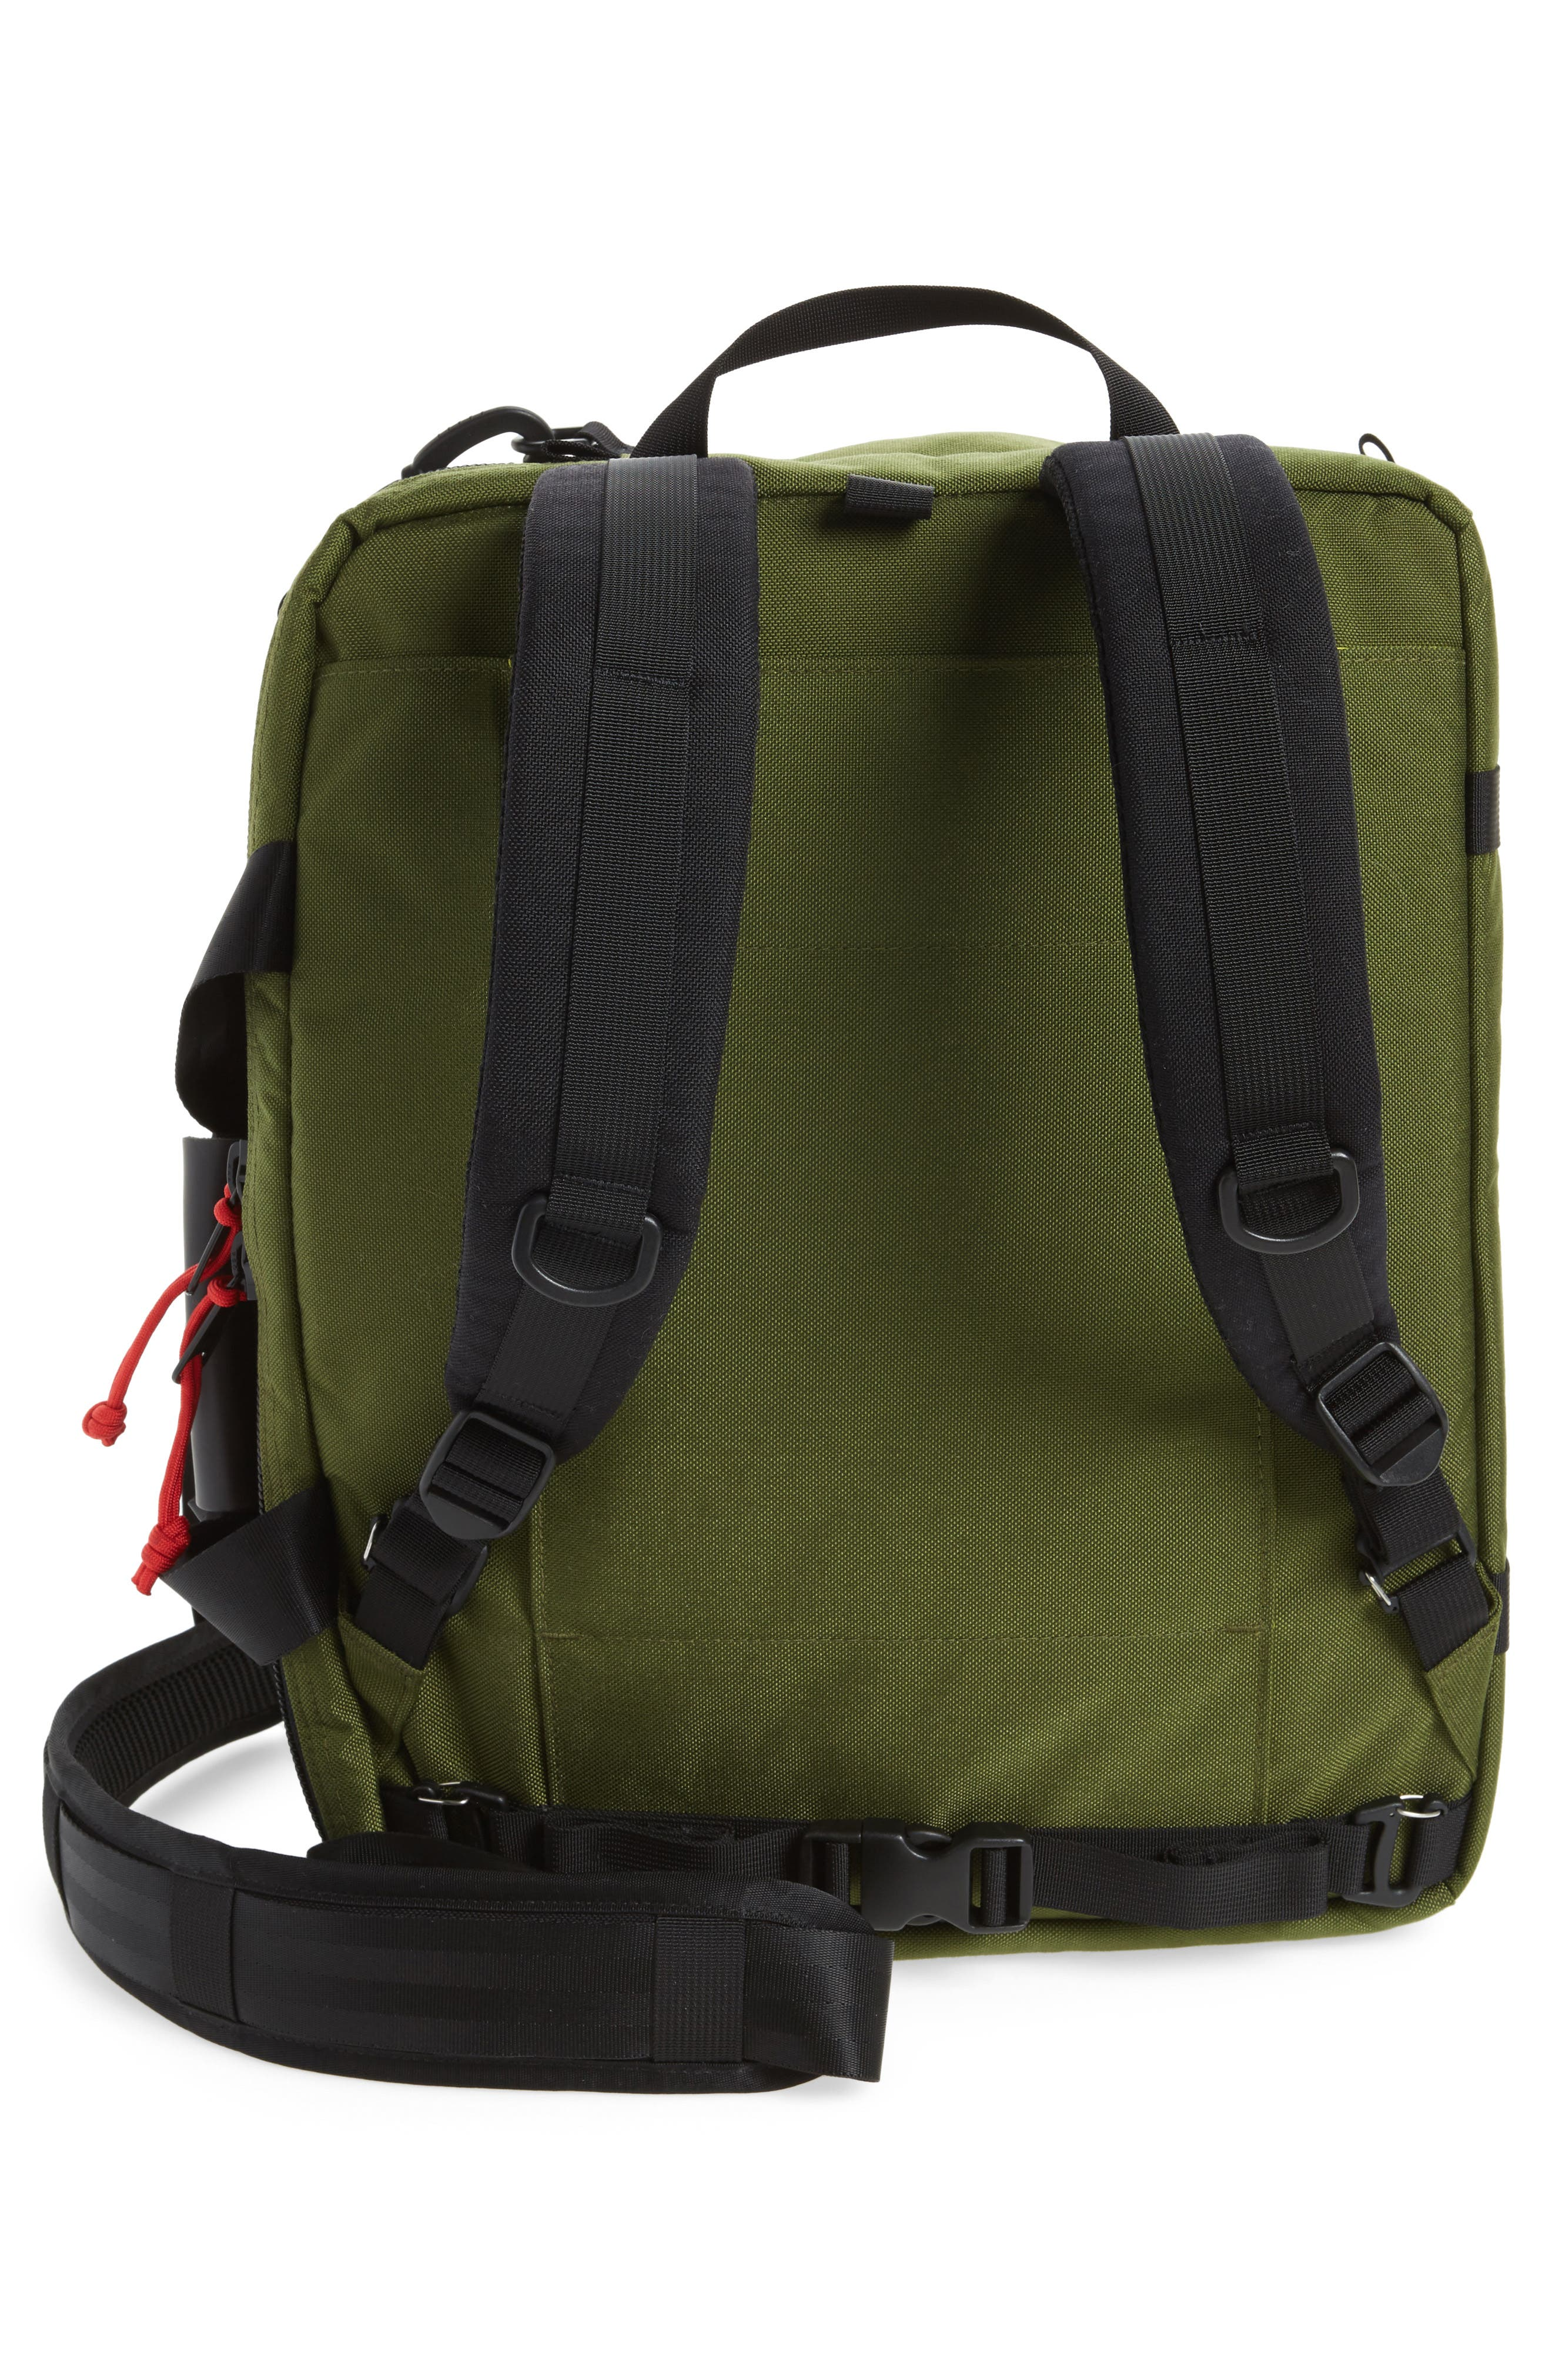 3-Day Briefcase,                             Alternate thumbnail 3, color,                             Olive/ Ballistic Black